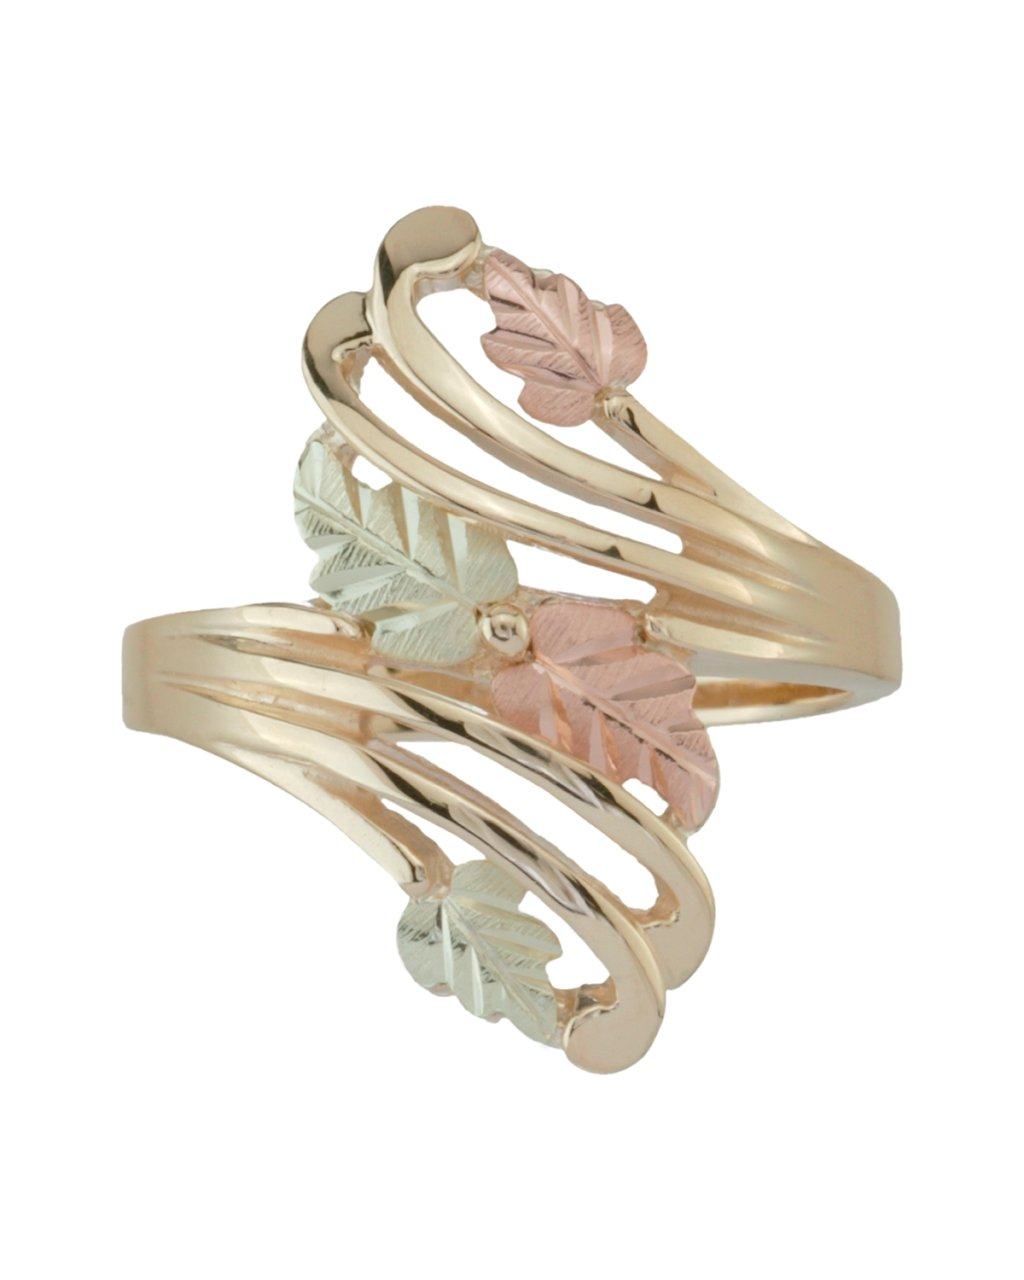 Bypass Flank Grape Leaf Ring, Sterling Silver, 12k Green and Rose Gold Black Hills Gold Motif, Size 10